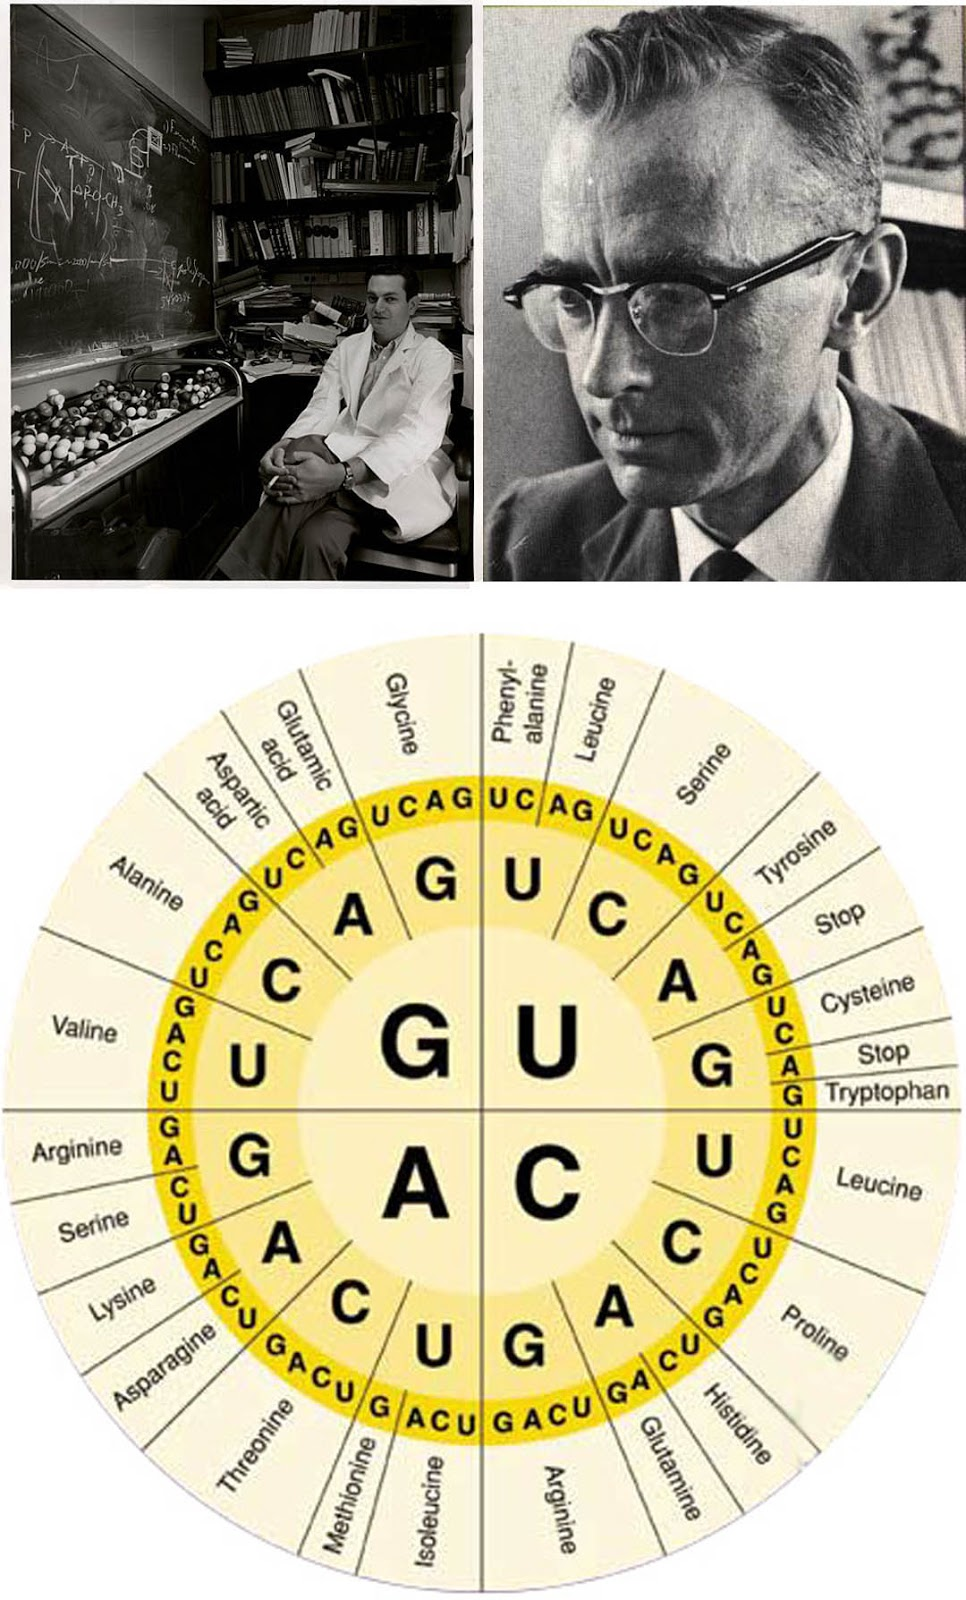 to describe the genetic code as degenerate indicates that